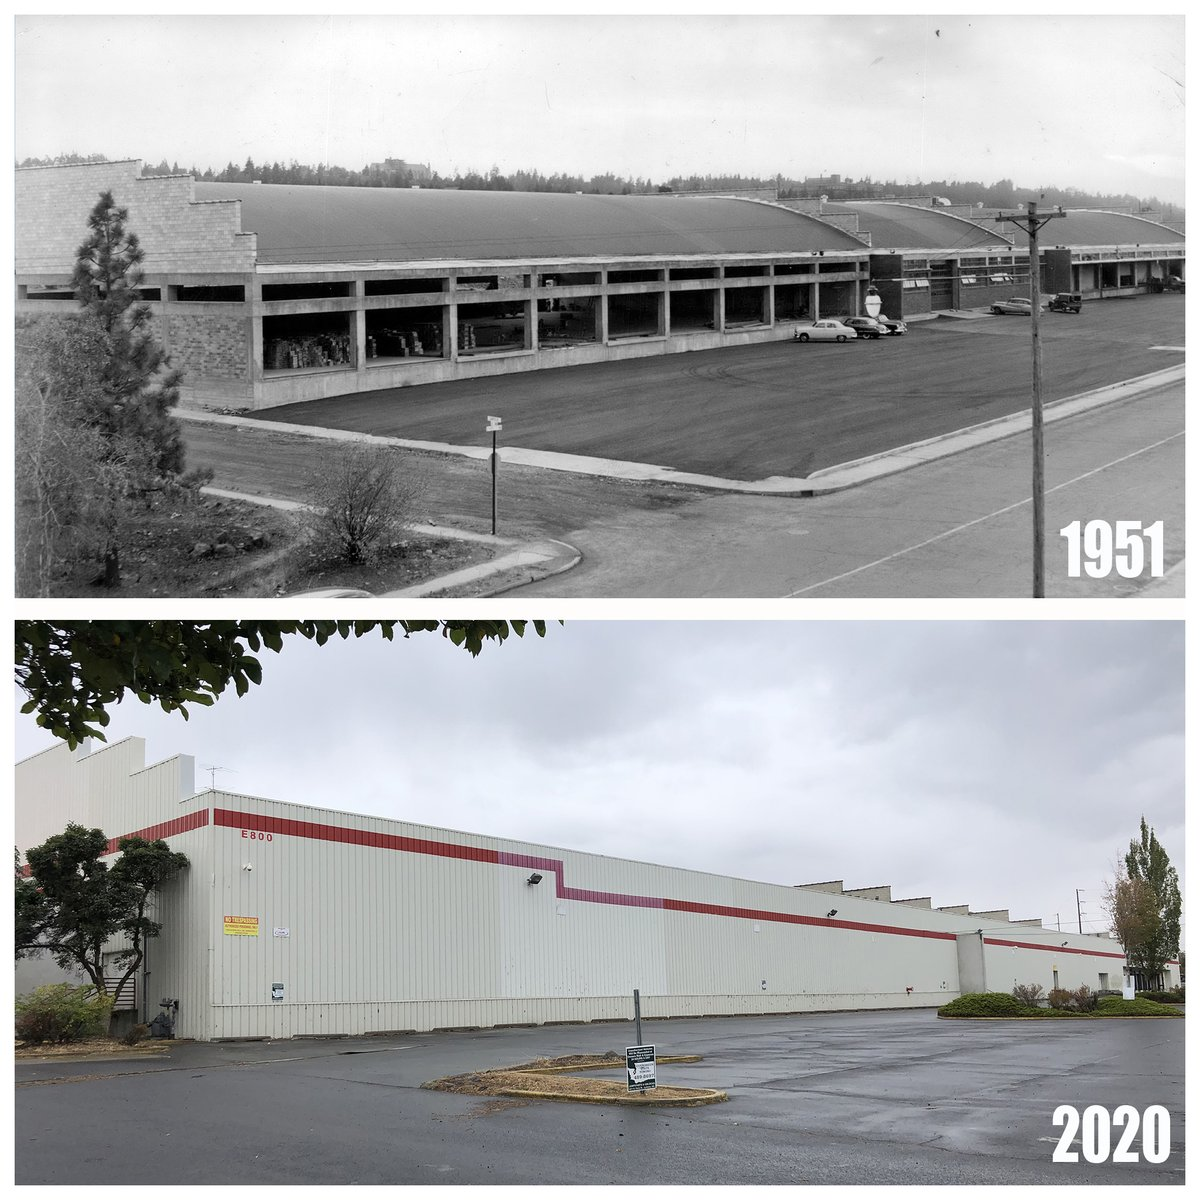 Did you ever wonder what the old Costco on Third Ave. in #Spokane was originally built for? It was the 1951 warehouse for trucking giant West Coast Fast Freight. Some of the roof trusses came from Farragut Naval Training Station.  https://t.co/E9N7t7Jp3I #History #ThenAndNow https://t.co/zdhvw72AmG